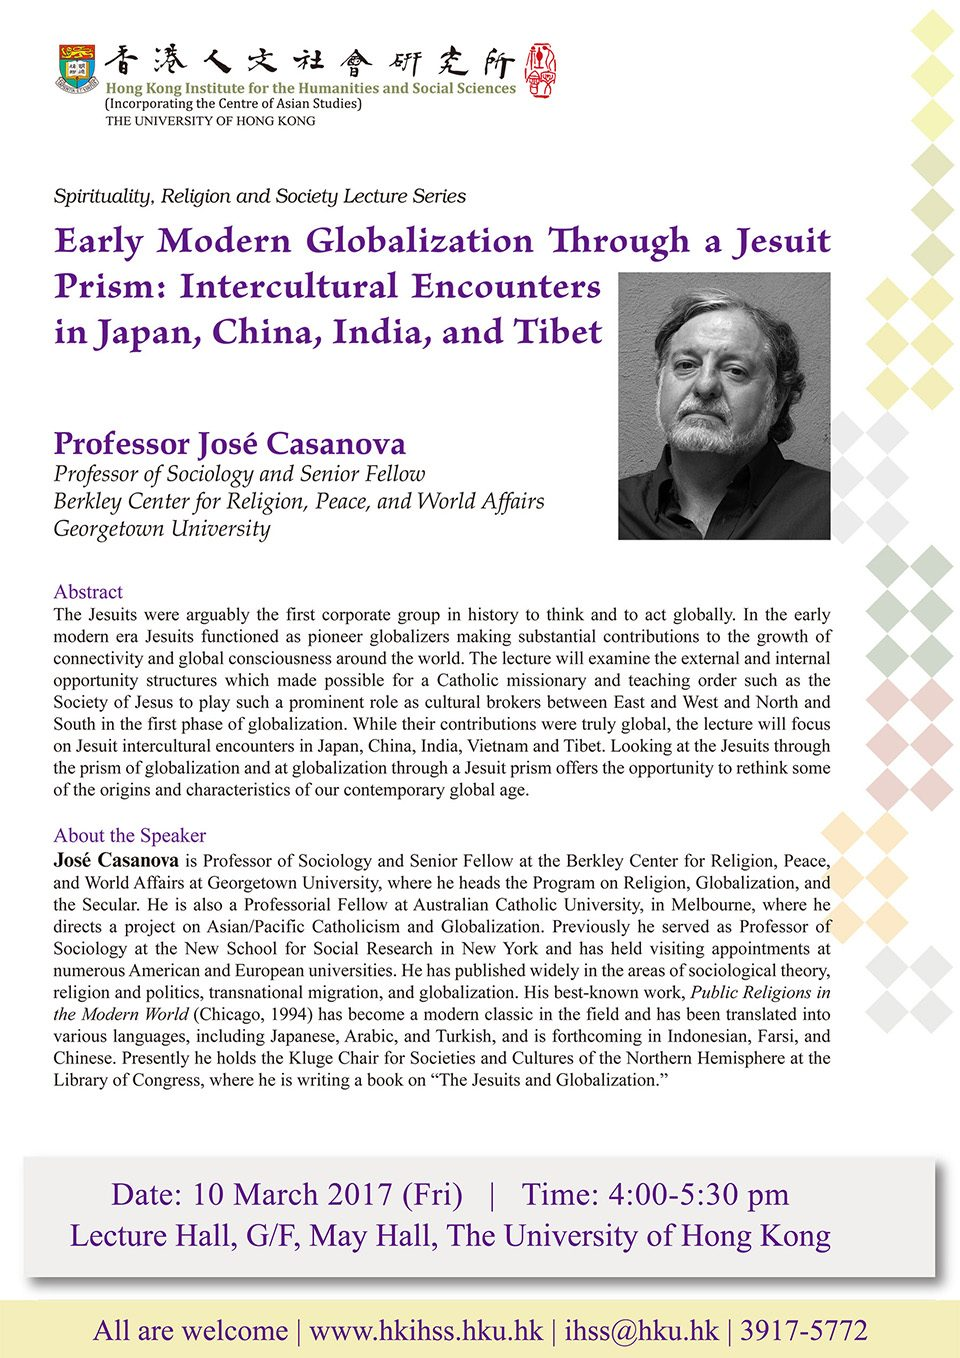 "Spirituality, Religion and Society Lecture Series ""Early Modern Globalization Through a Jesuit Prism: Intercultural Encounters in Japan, China, India, and Tibet"" by Prof. José Casanova (March 10, 2017)"